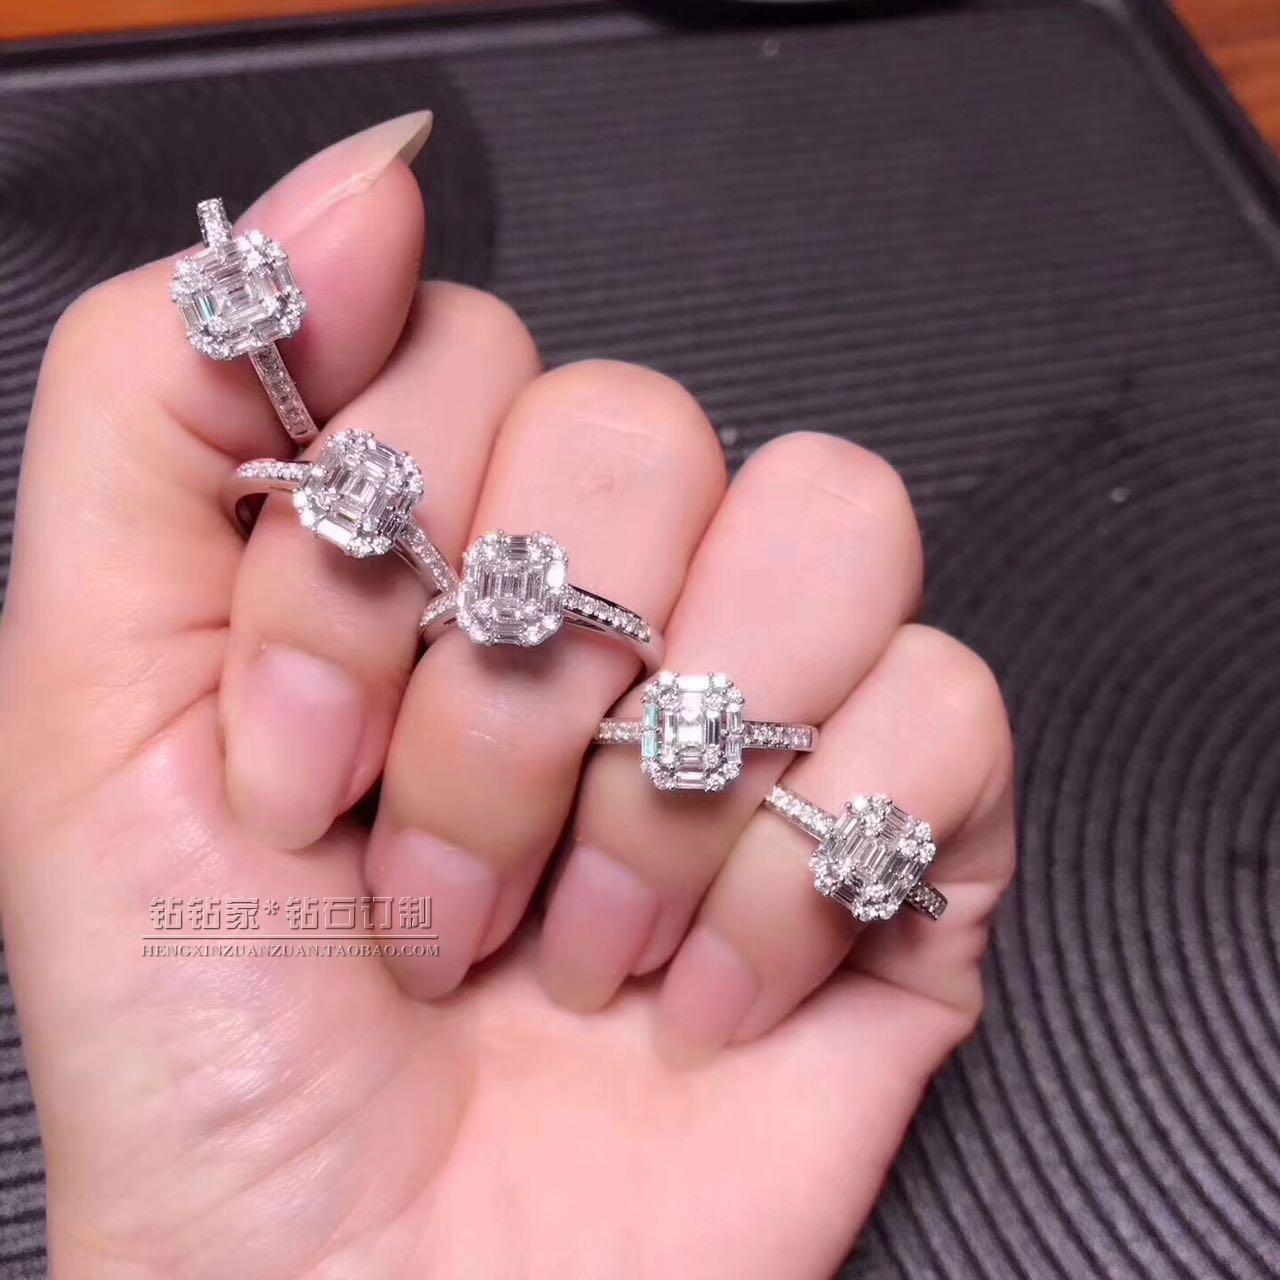 Drilling drill 18k gold diamond ring big rock candy luxury diamond ...